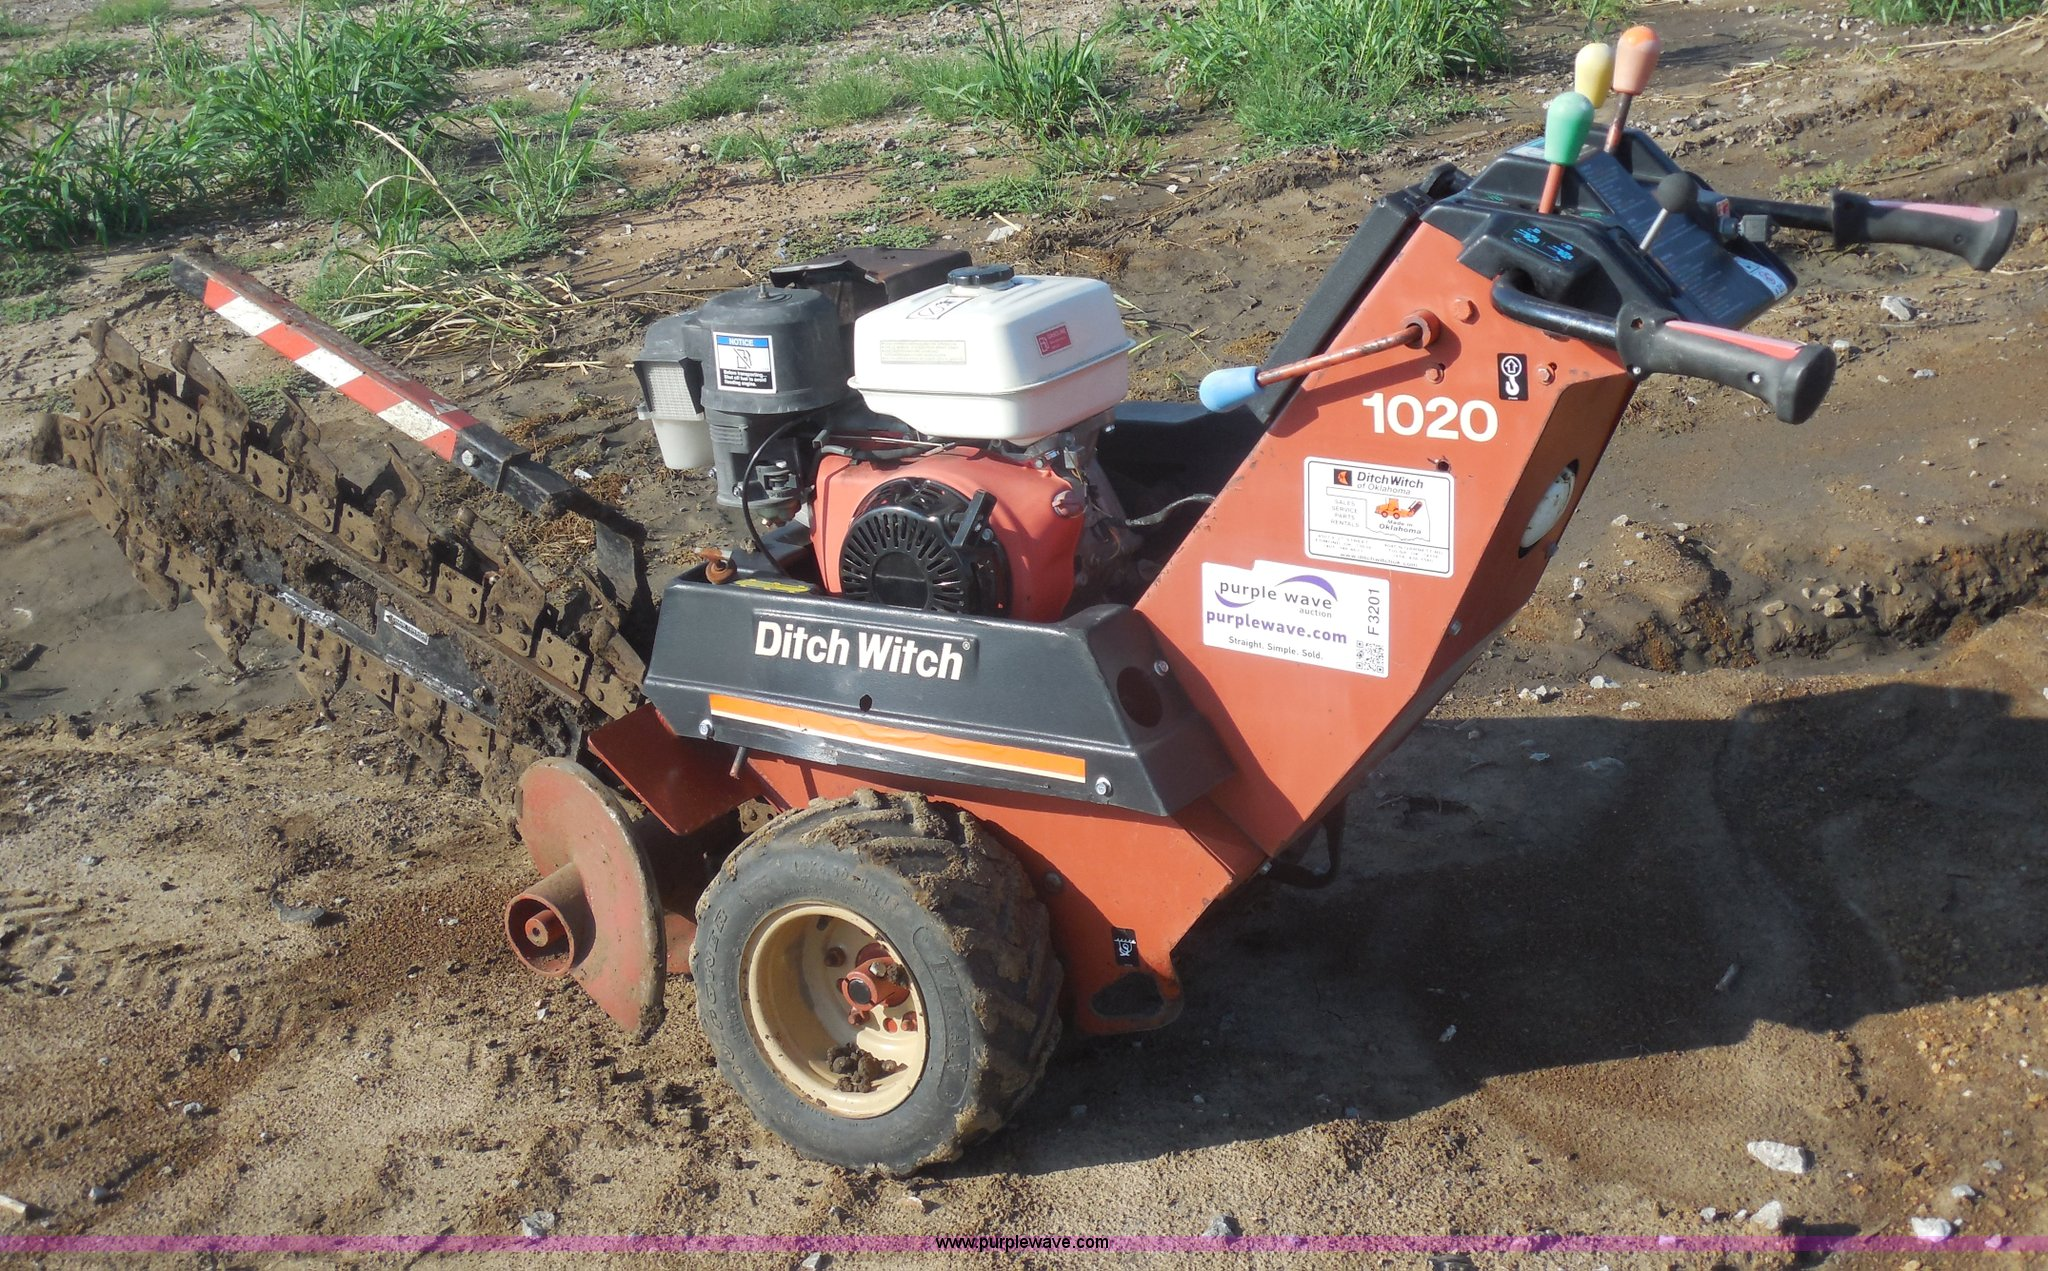 Ditch Witch 1020 walk behind trencher | Item F3201 | SOLD! A